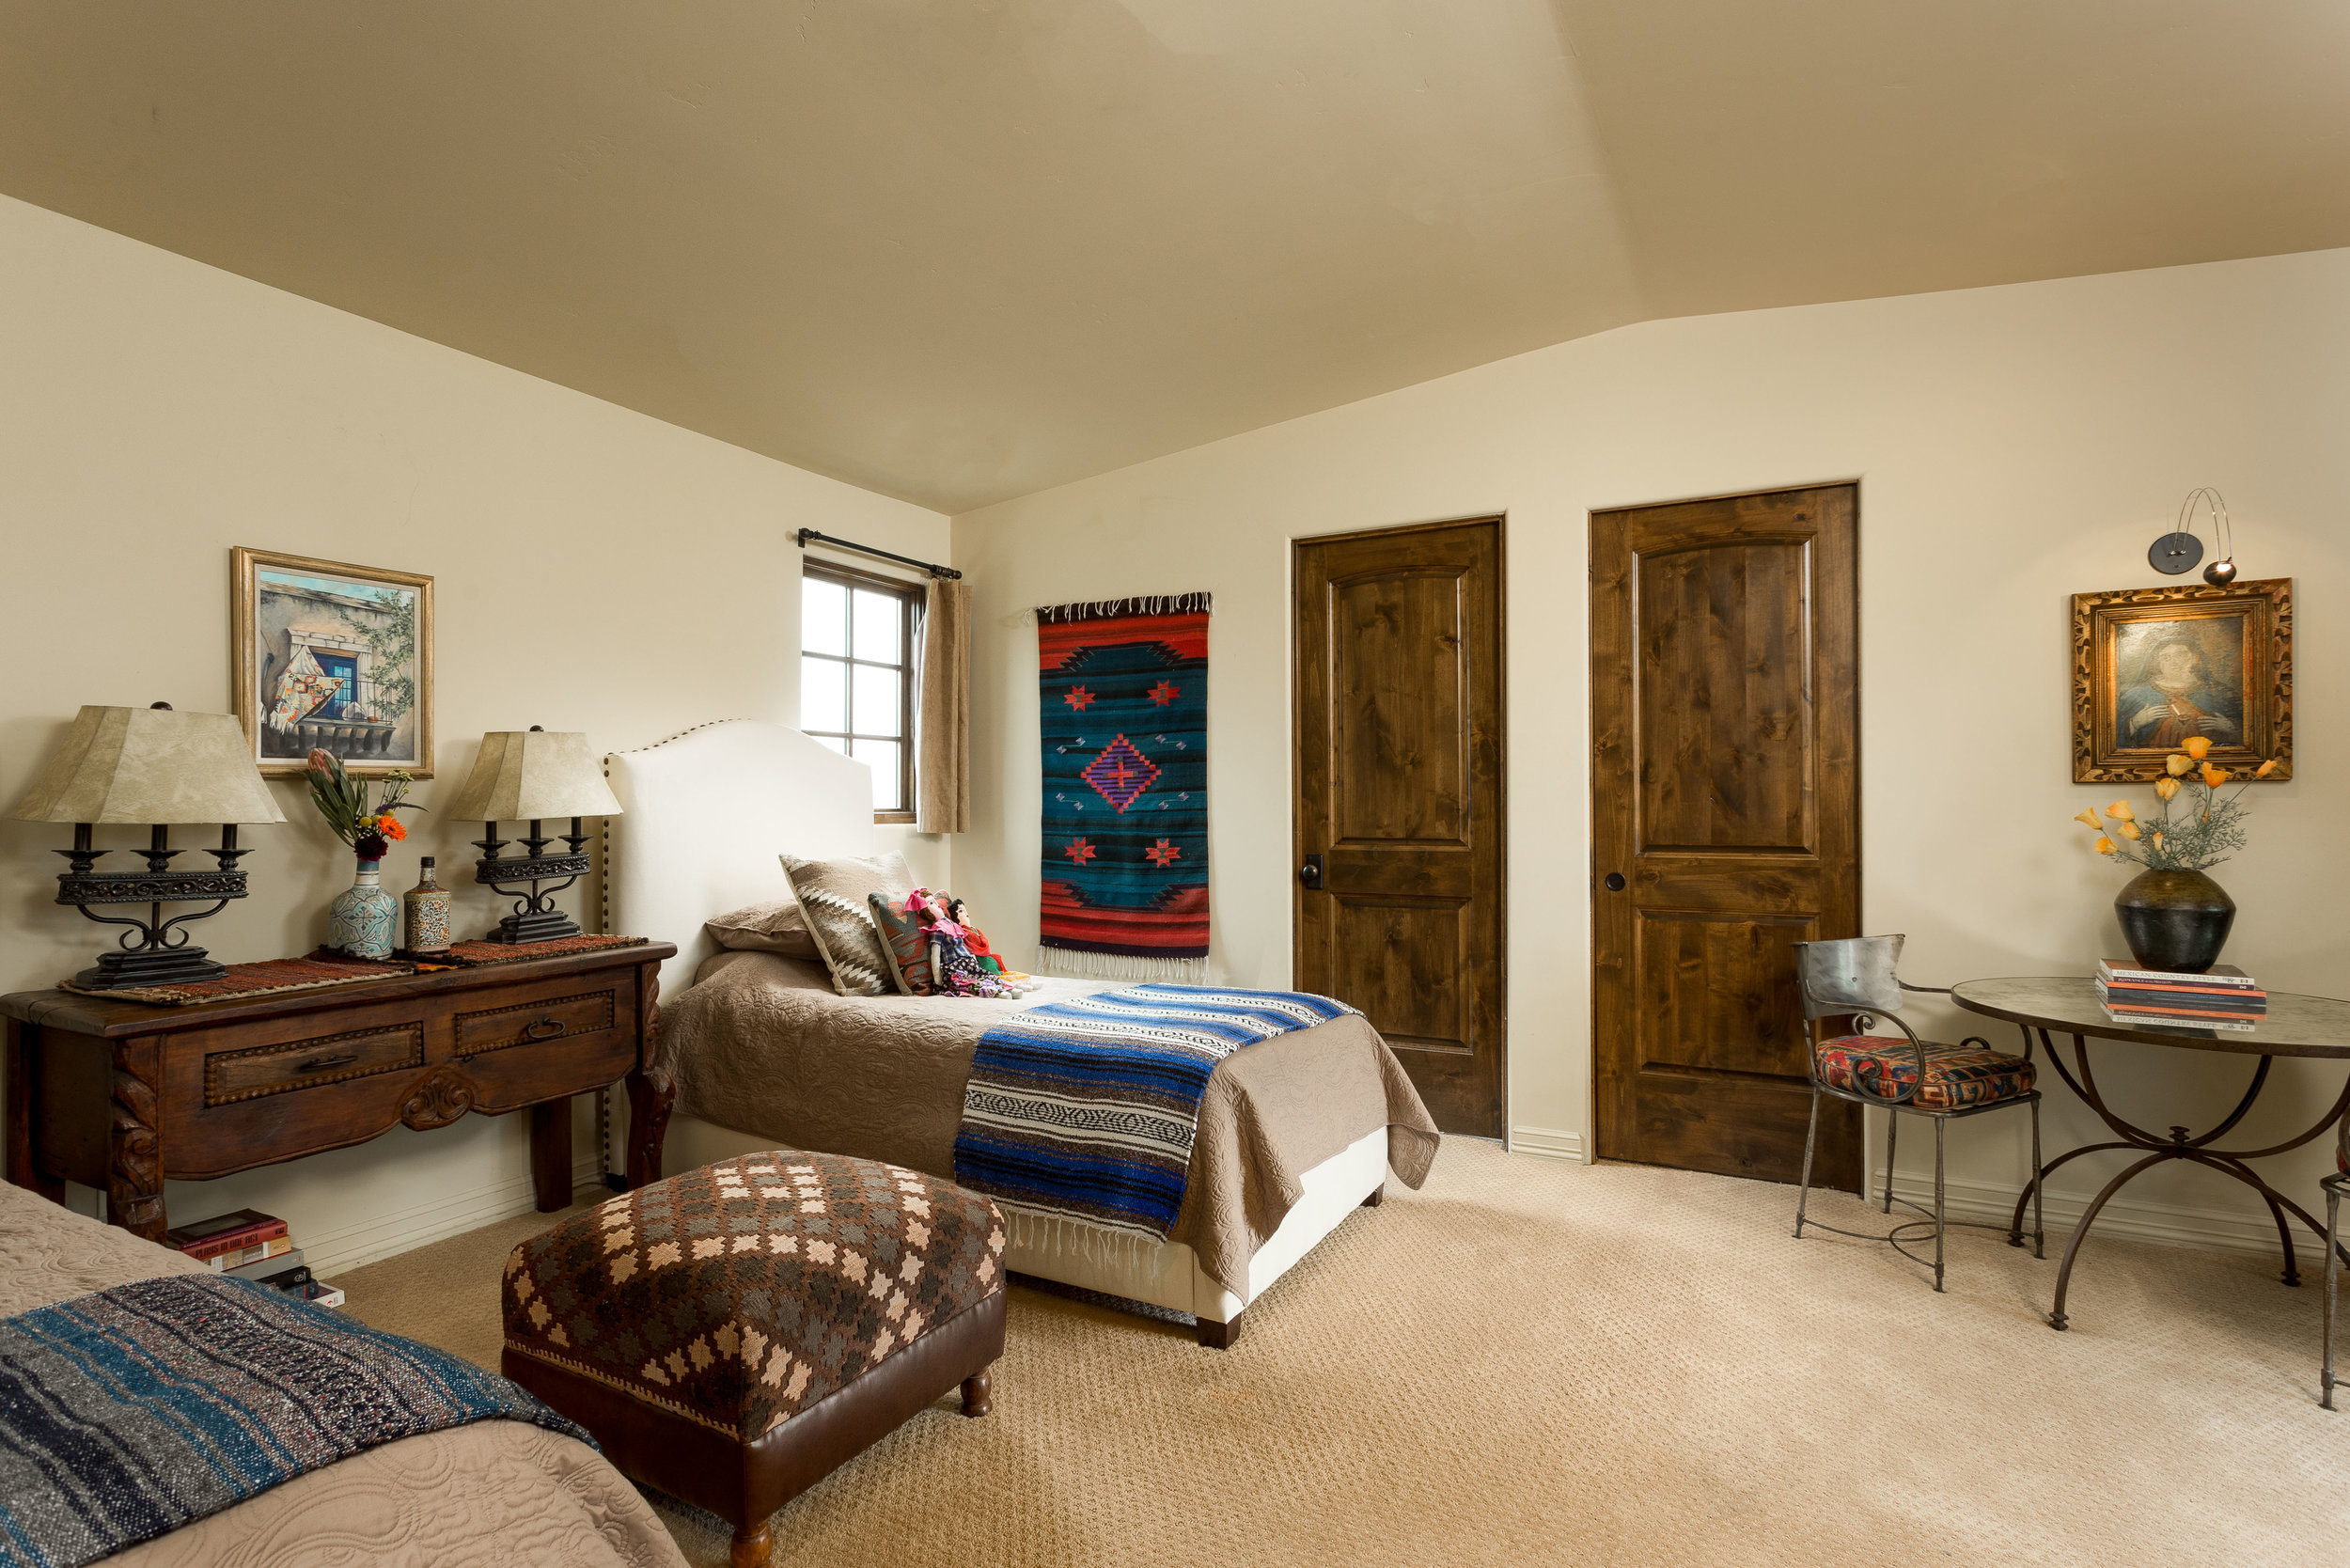 Popix Designs - Traditional Design meets Southwestern Design